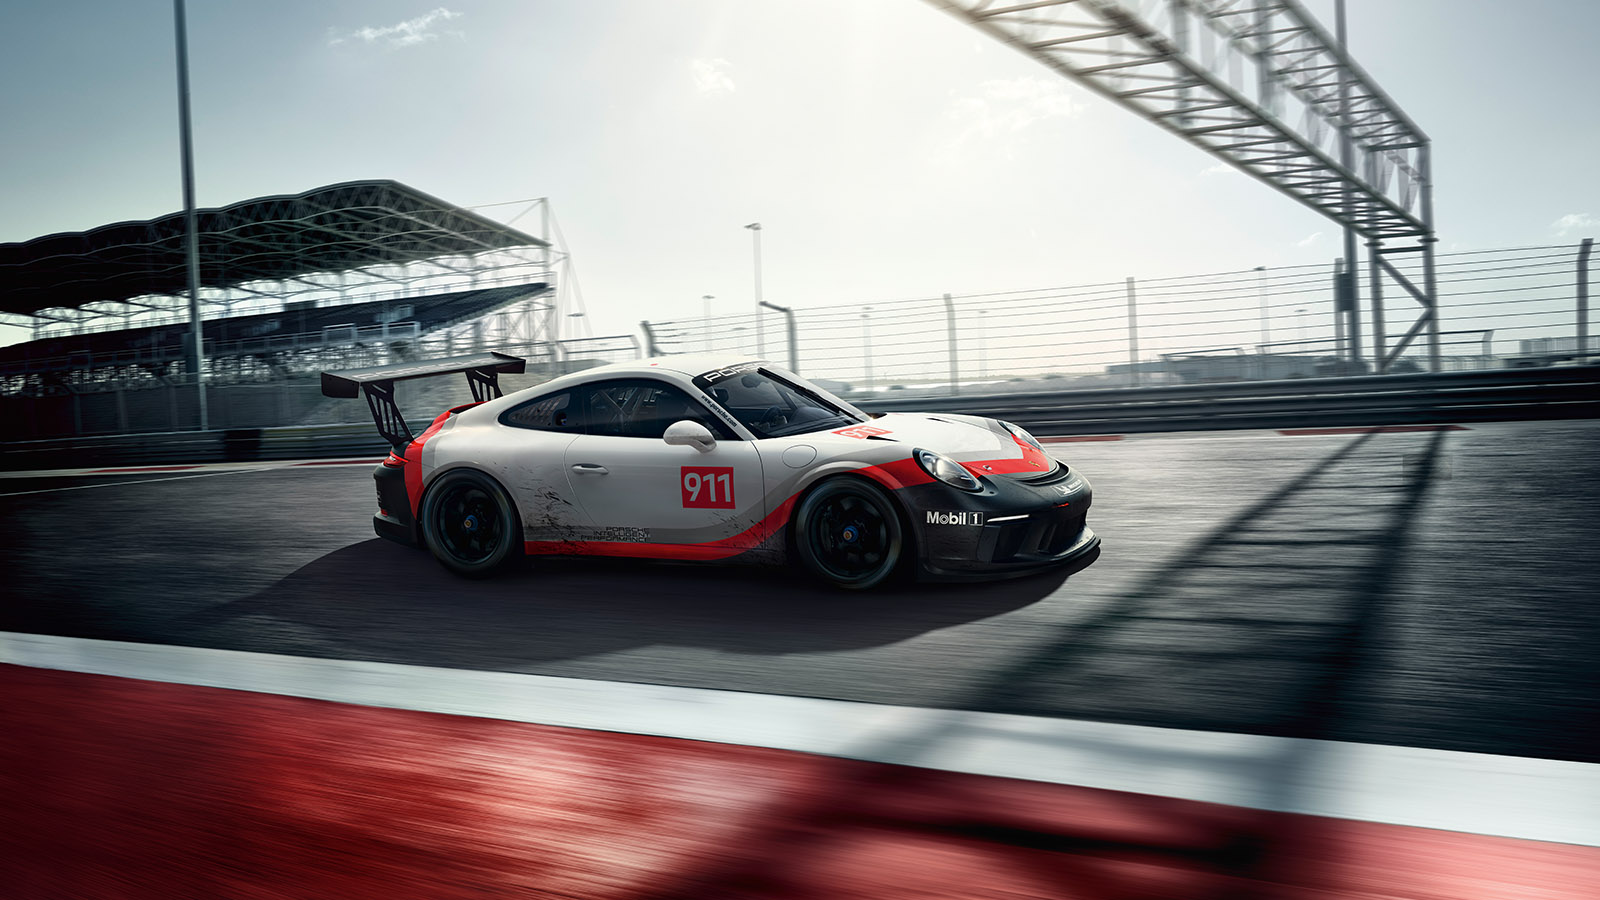 Porsche - The races: Superlative sporty performance. Profoundly engaging duels.